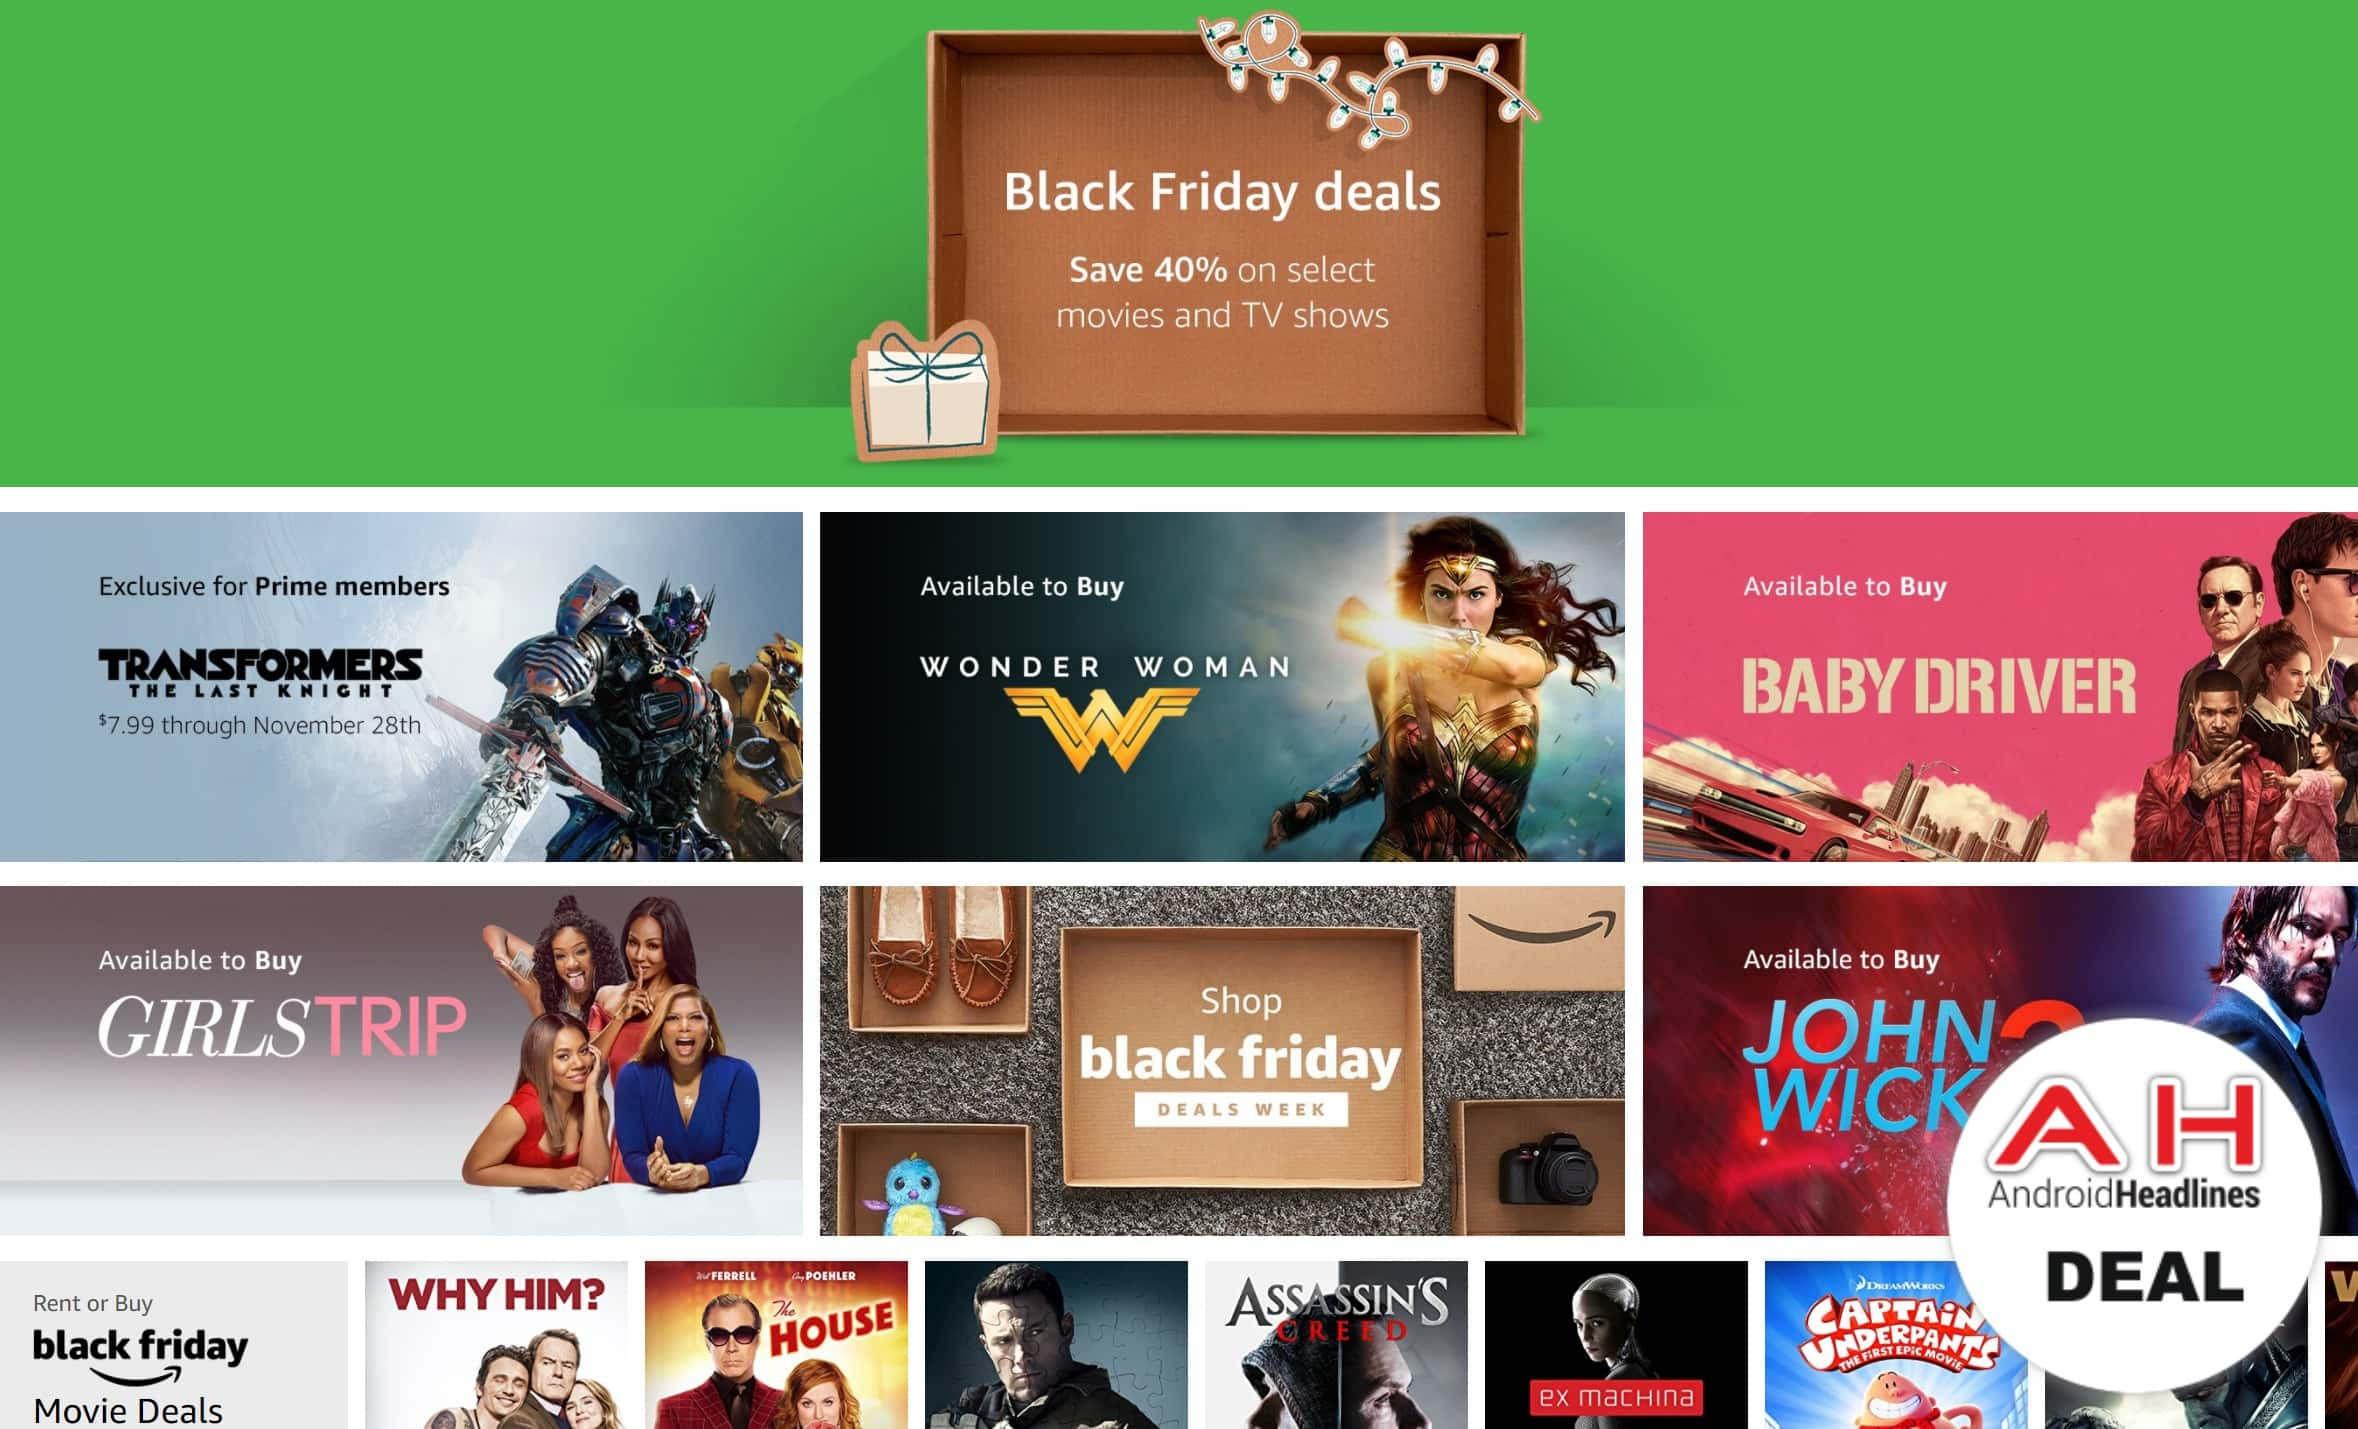 Deal Save Up To 40 On Movies Tv Shows For Black Friday 11 24 17